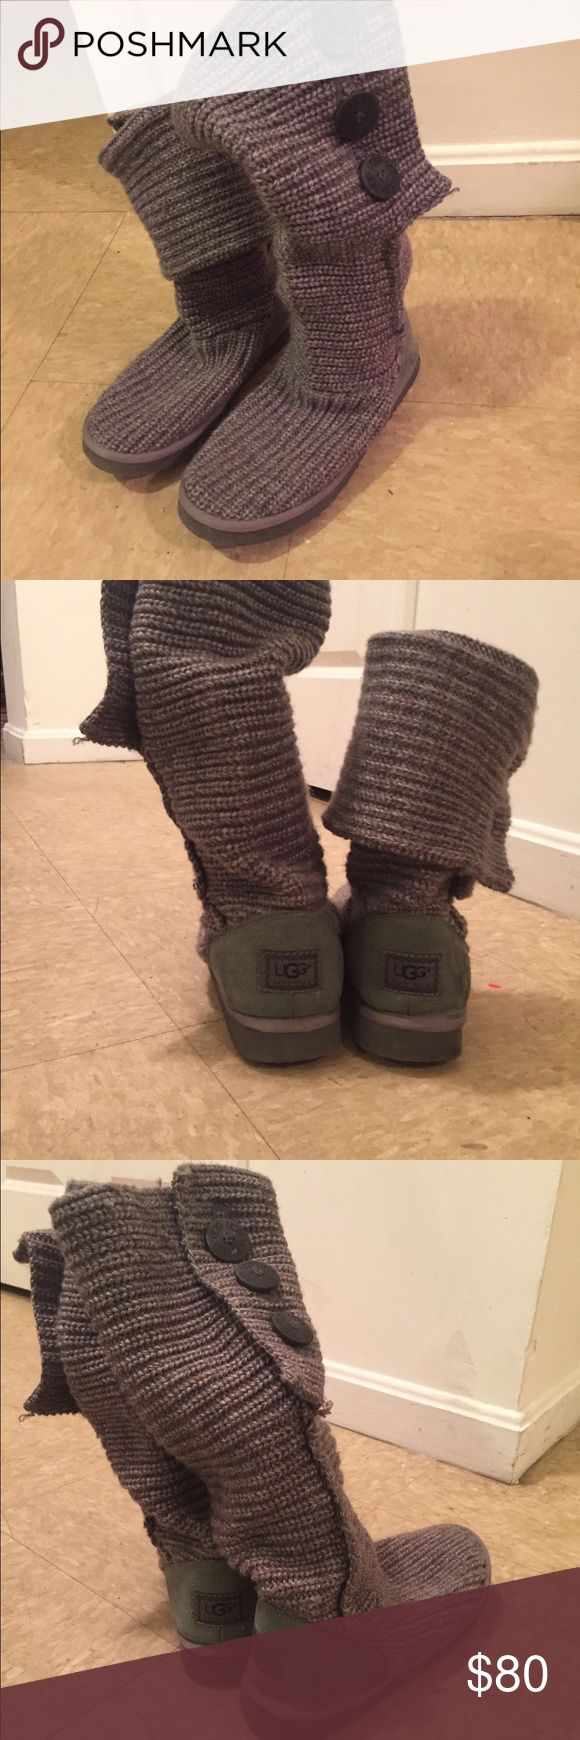 Tall knit grey cardy UGG boots size 8 Lightly worn knit UGGS. Price negotiable UGG Shoes Winter & Rain Boots